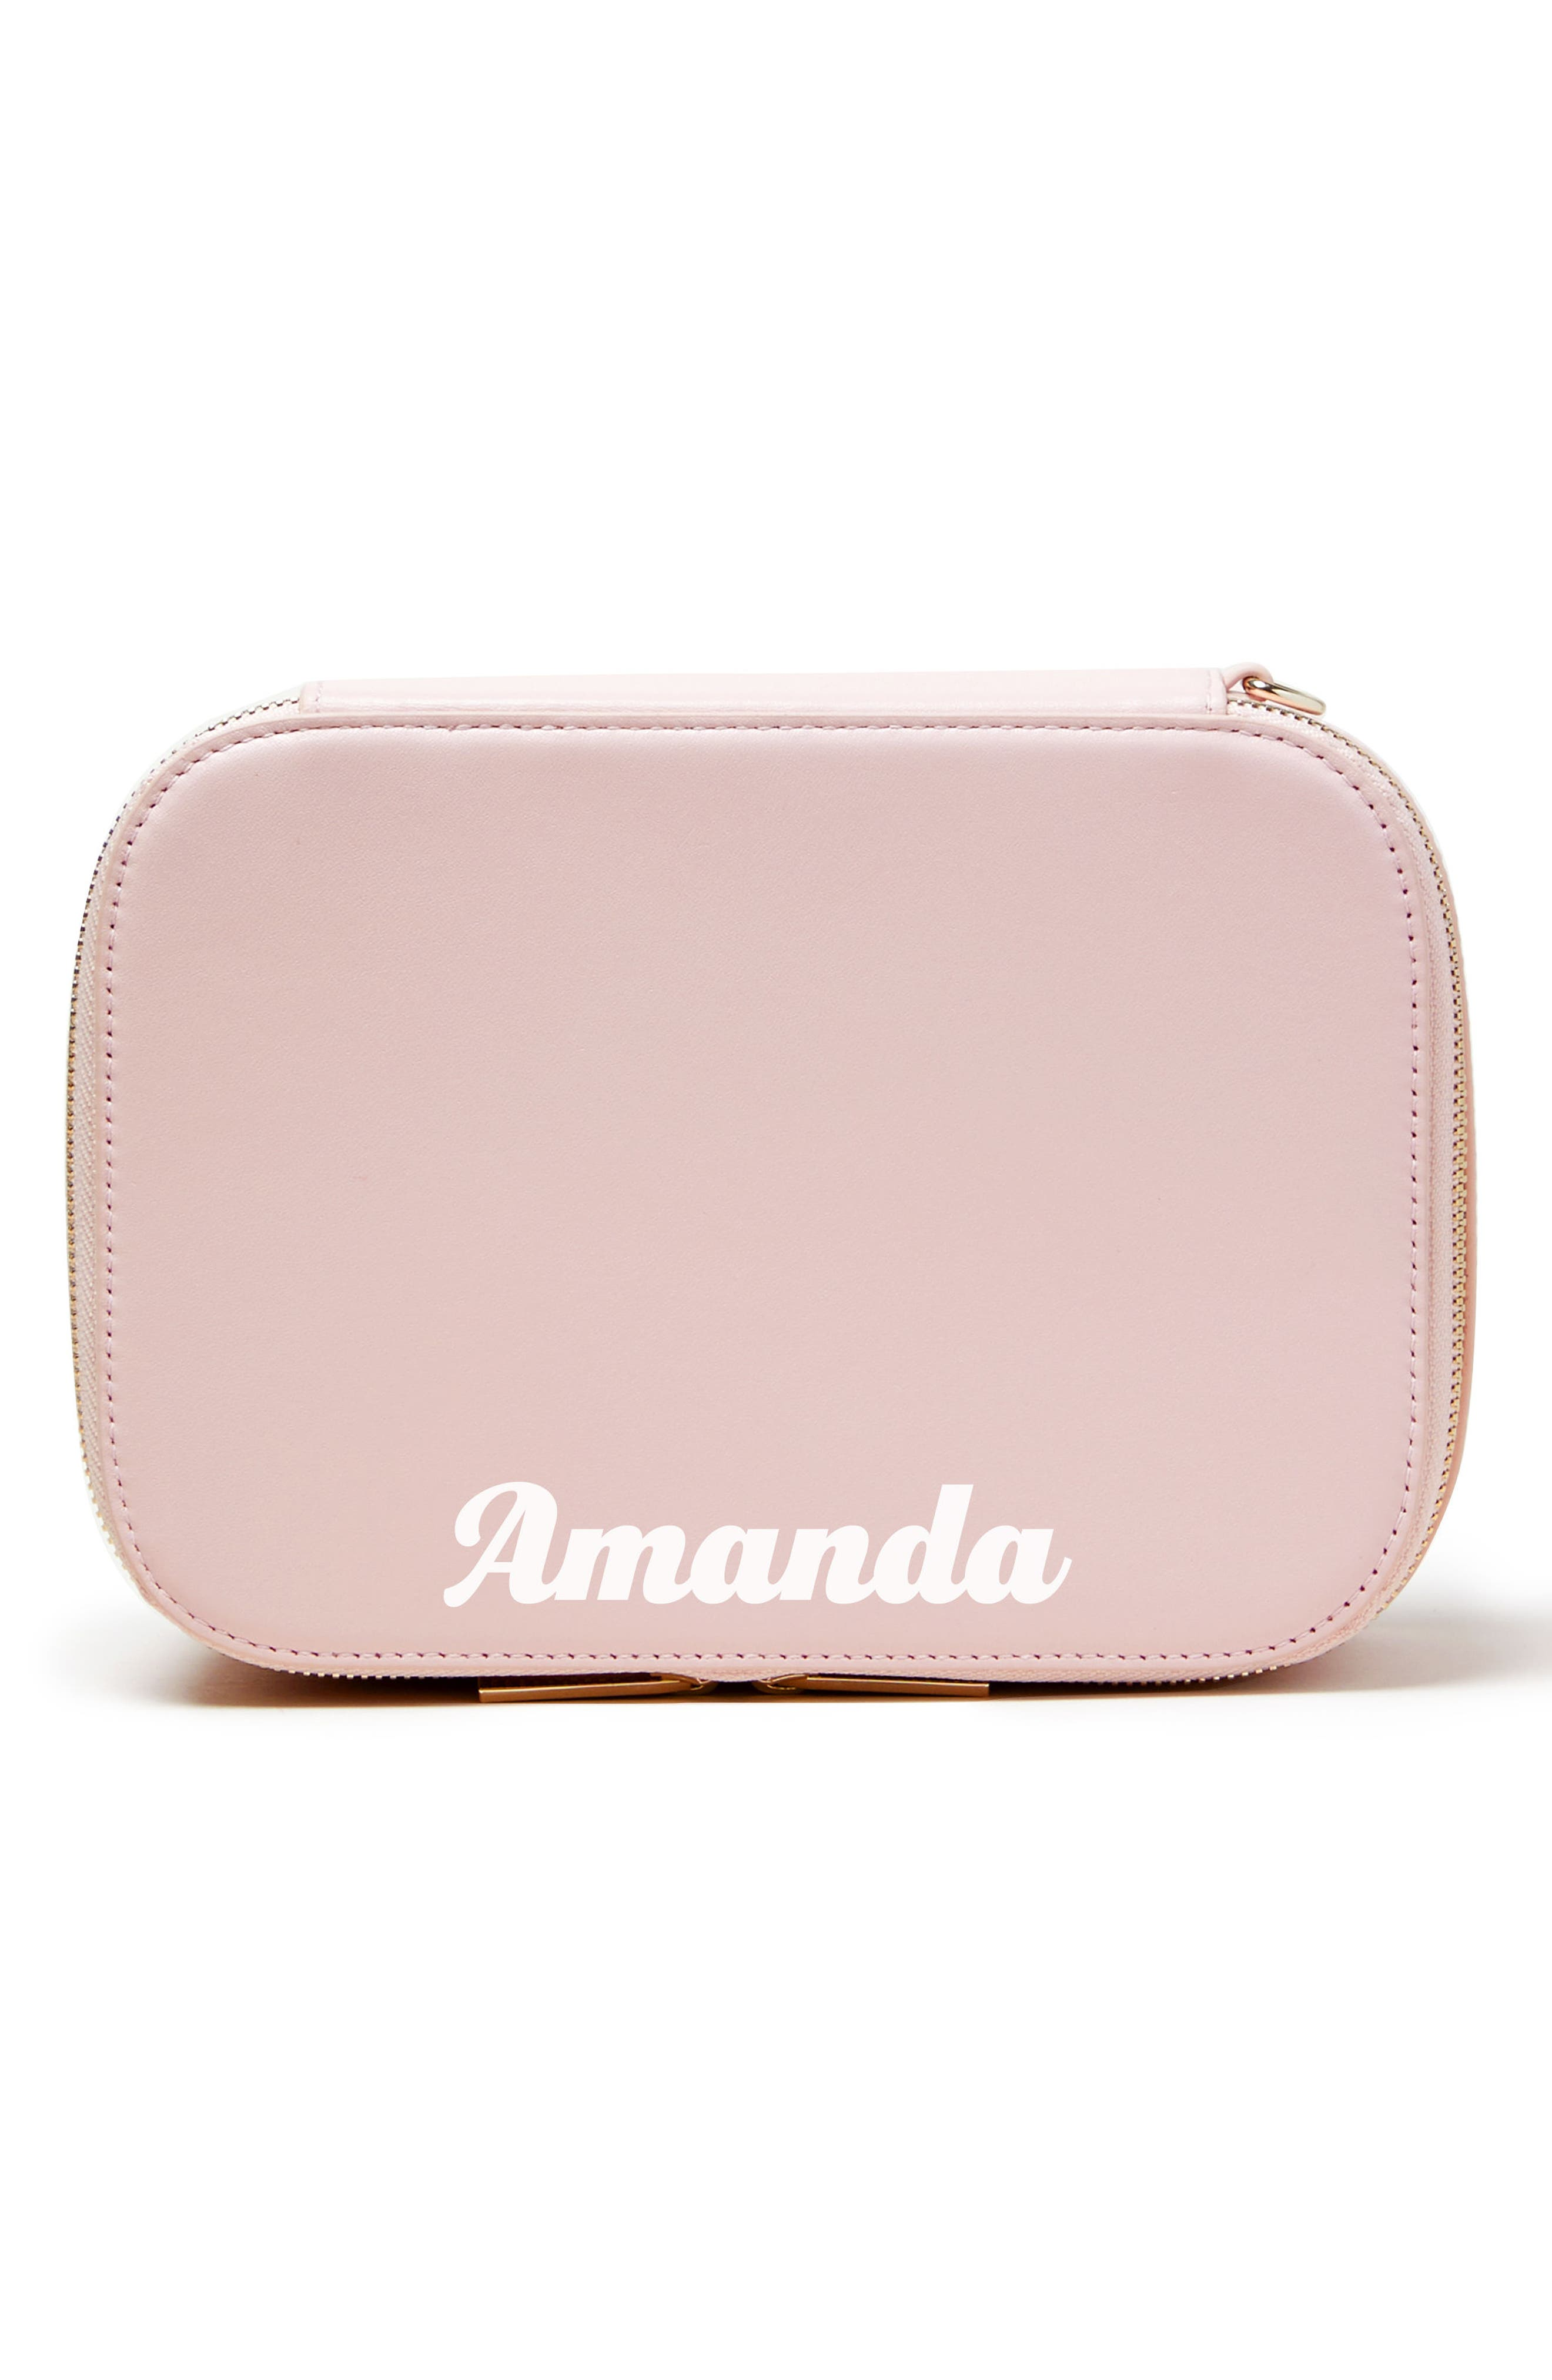 Alternate Image 1 Selected - Pop & Suki Bigger Personalized Makeup Case (Nordstrom Exclusive)